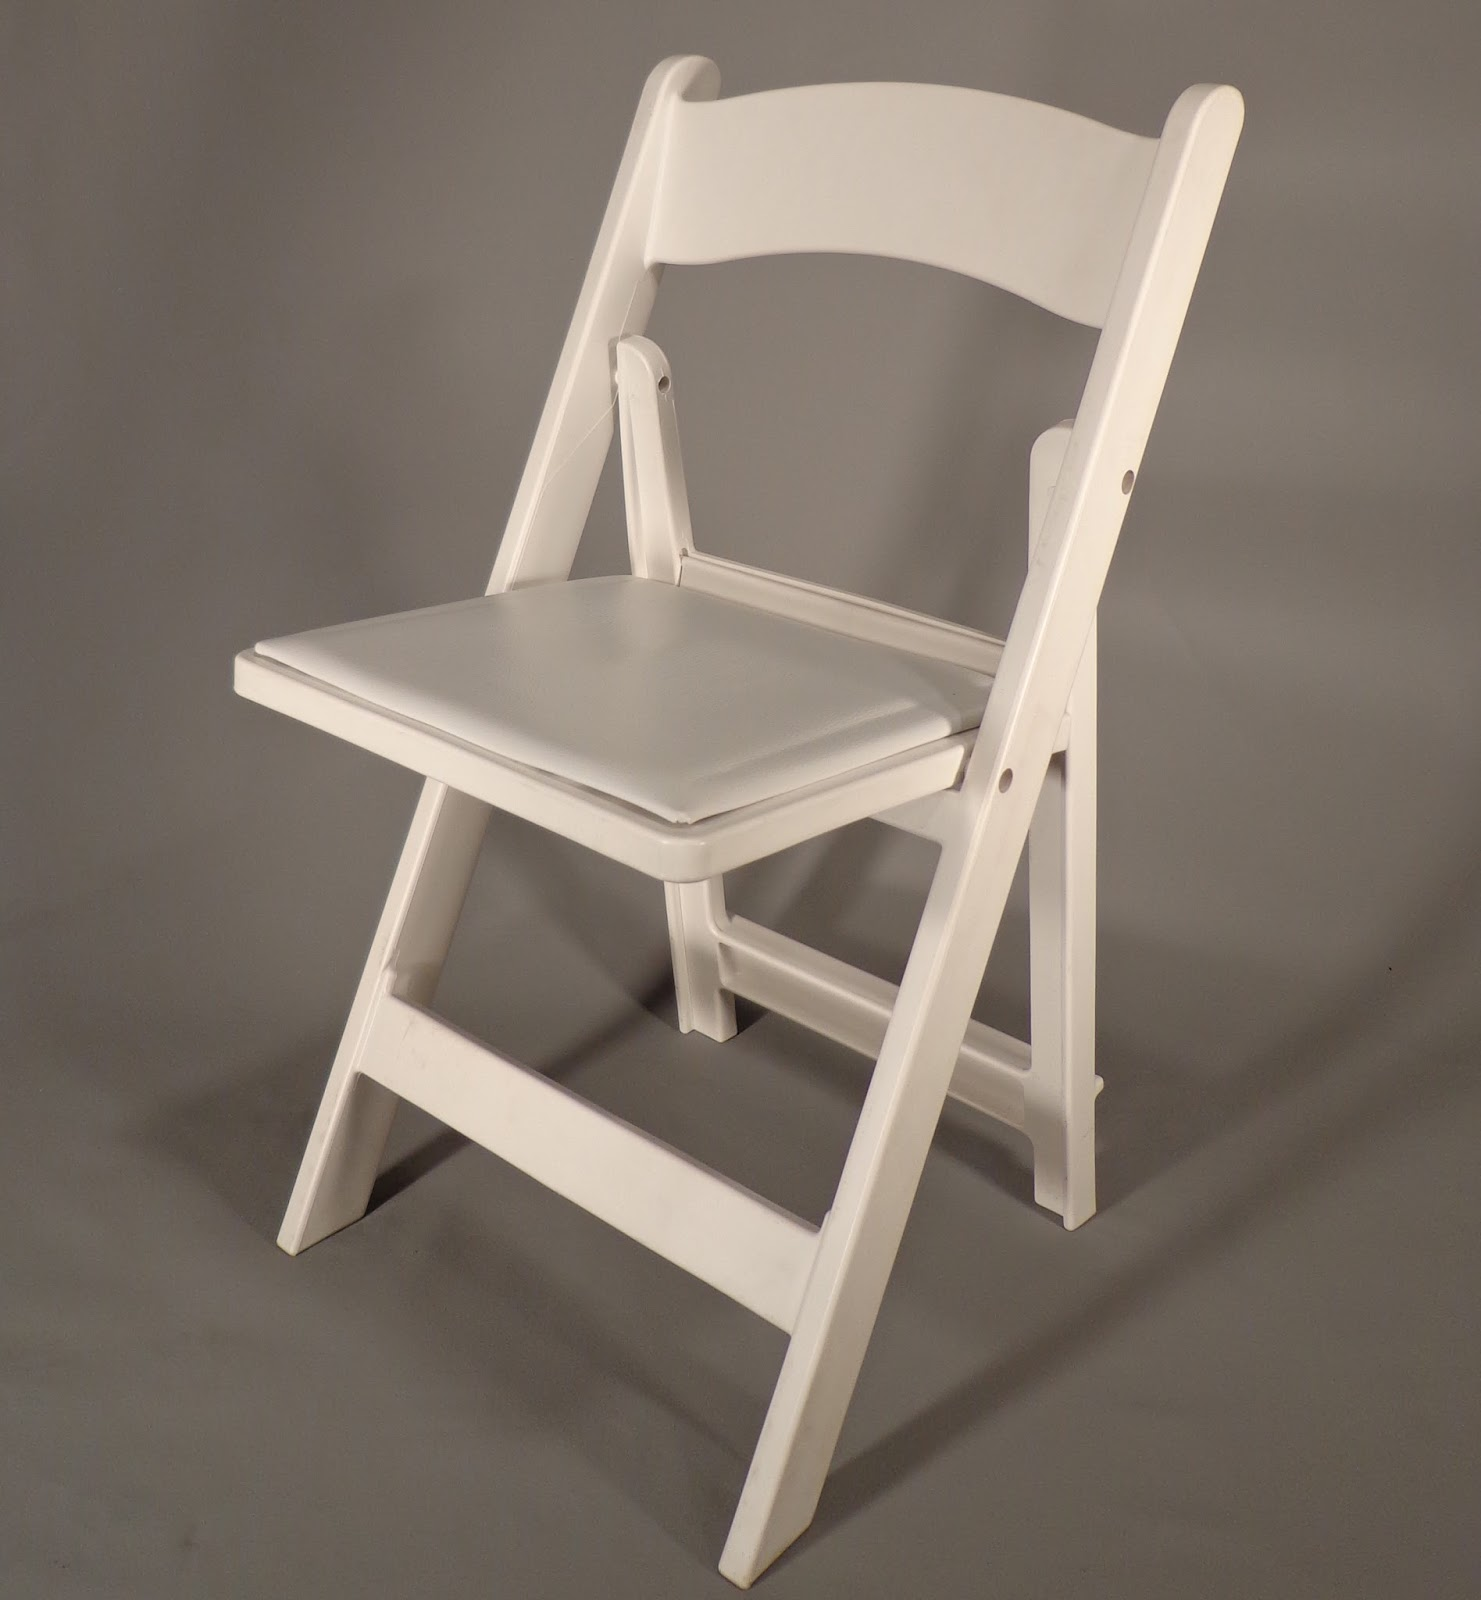 Chair Rentals In Md Square Leg Caps Best Rates On Party Chairs Dmv Rental